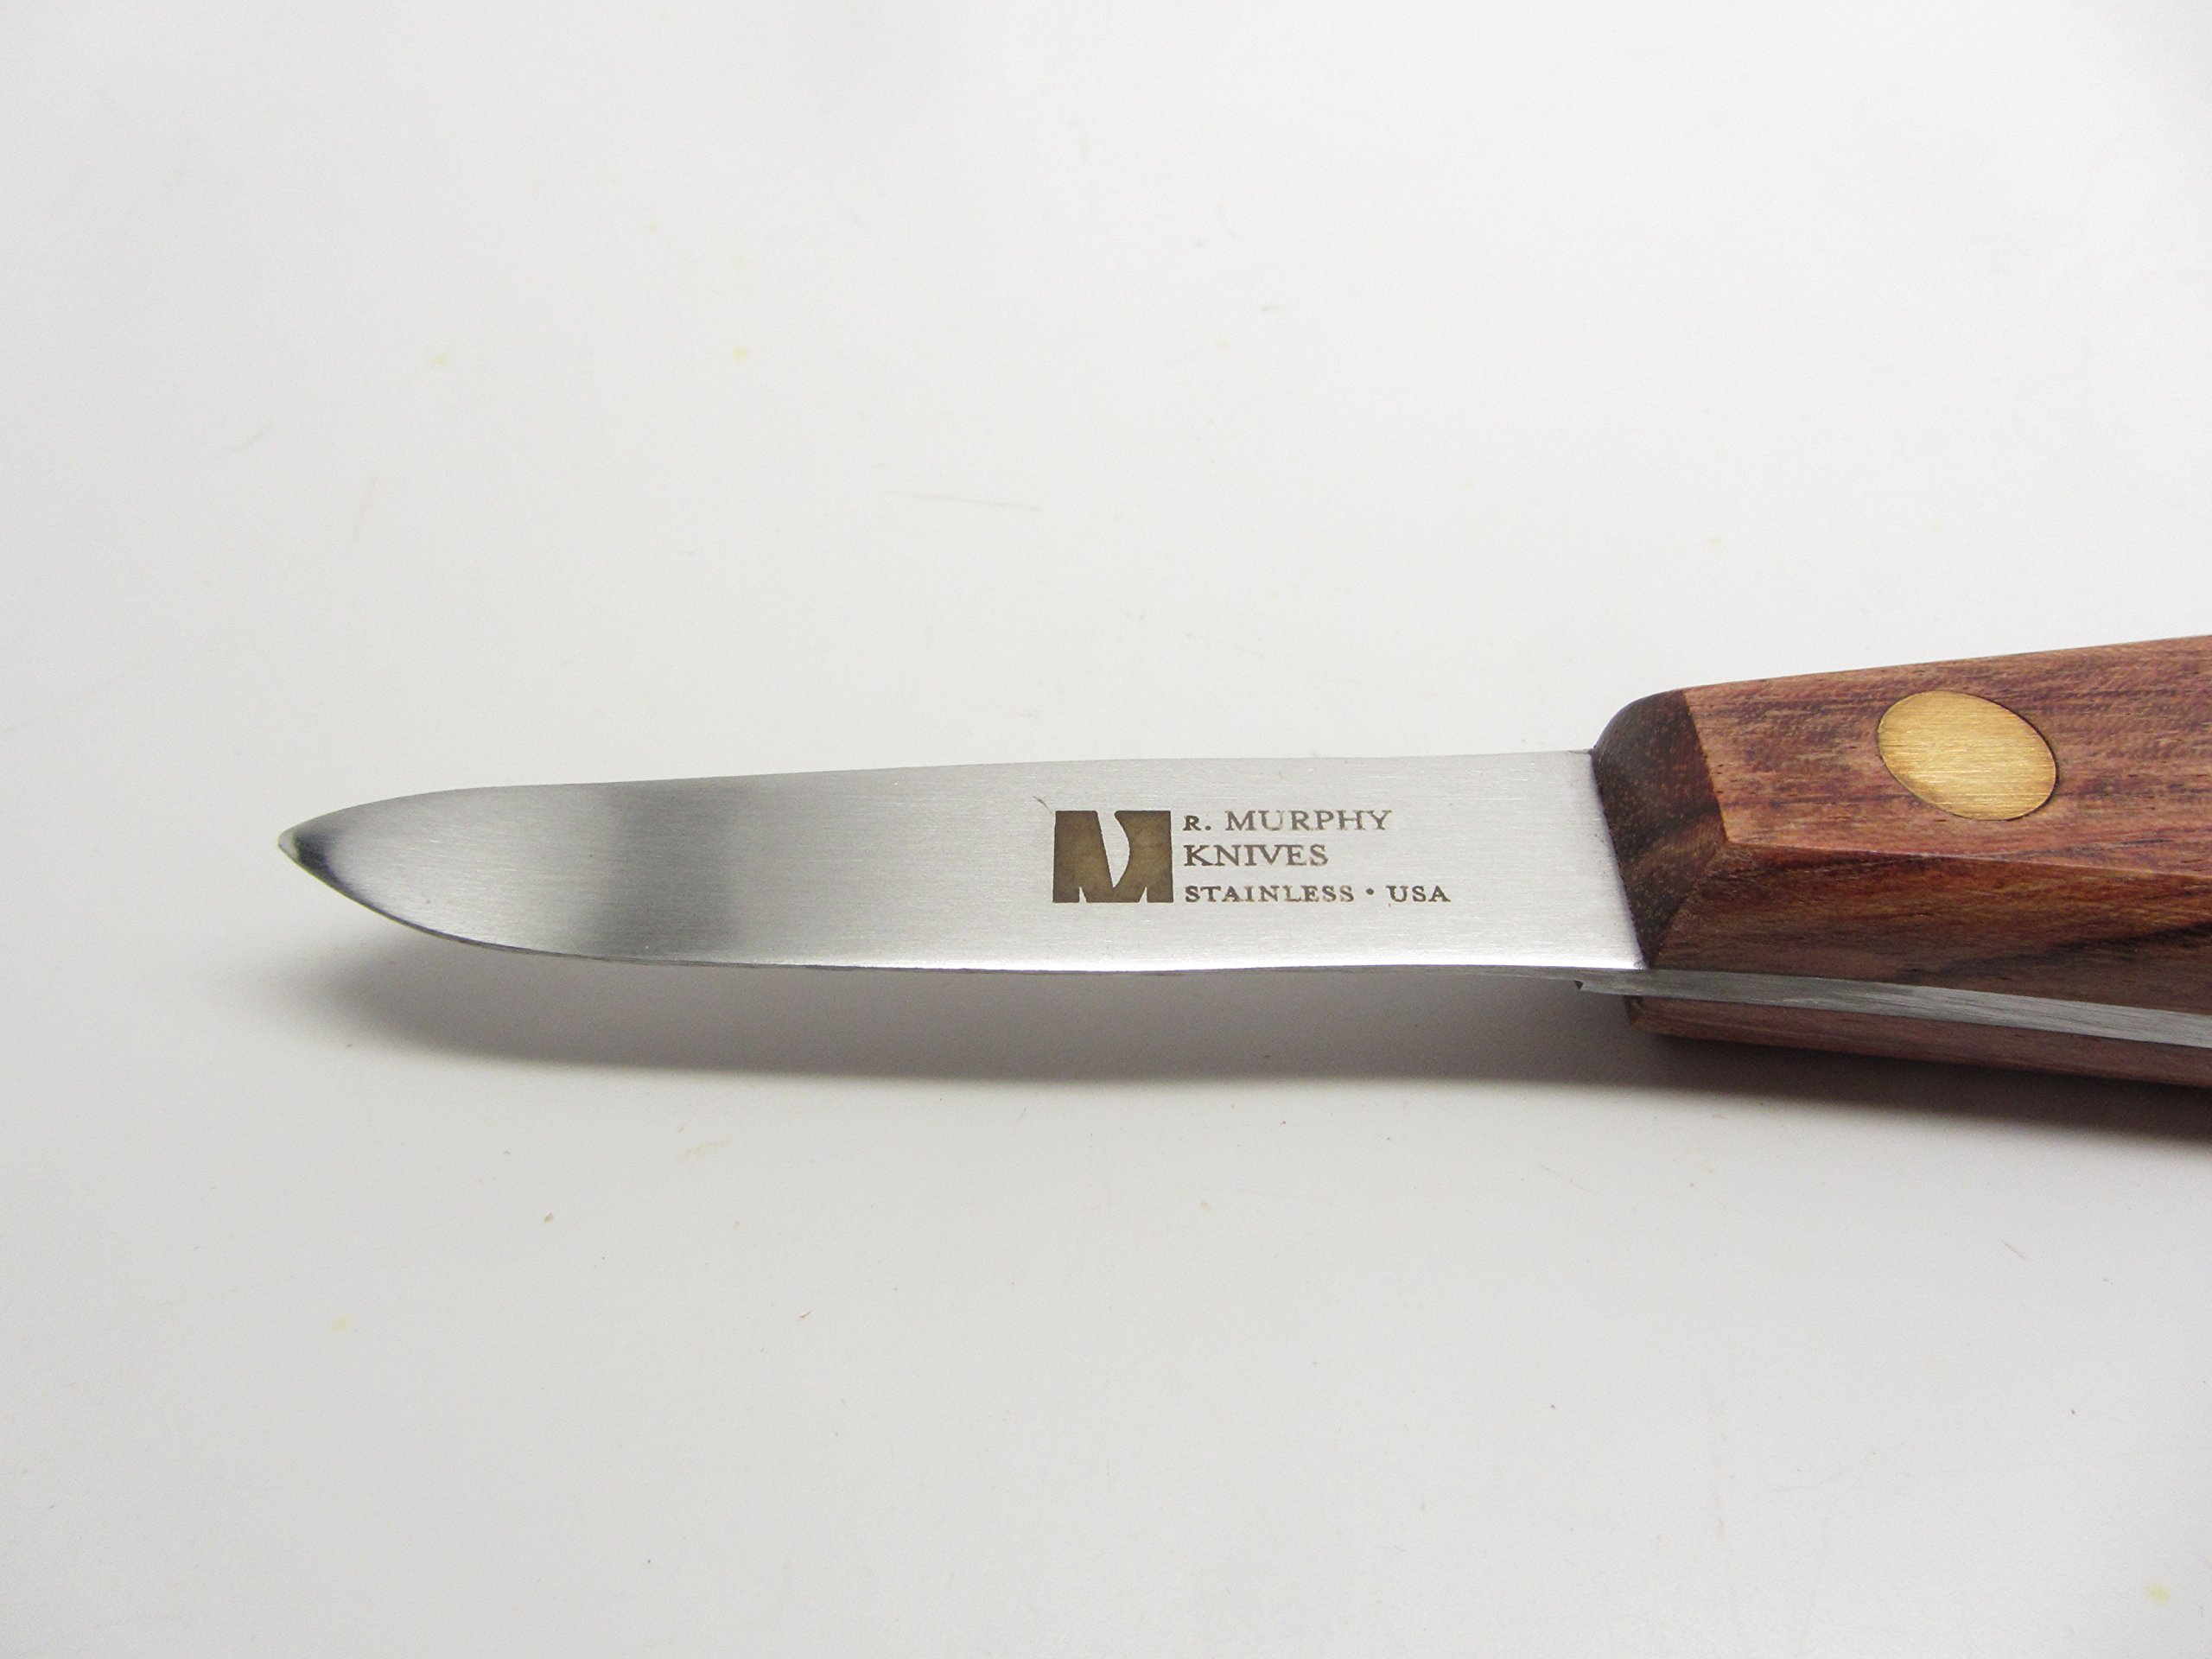 R Murphy New Haven Oyster Knife Shucker (Elite) by UJ Ramelson Co